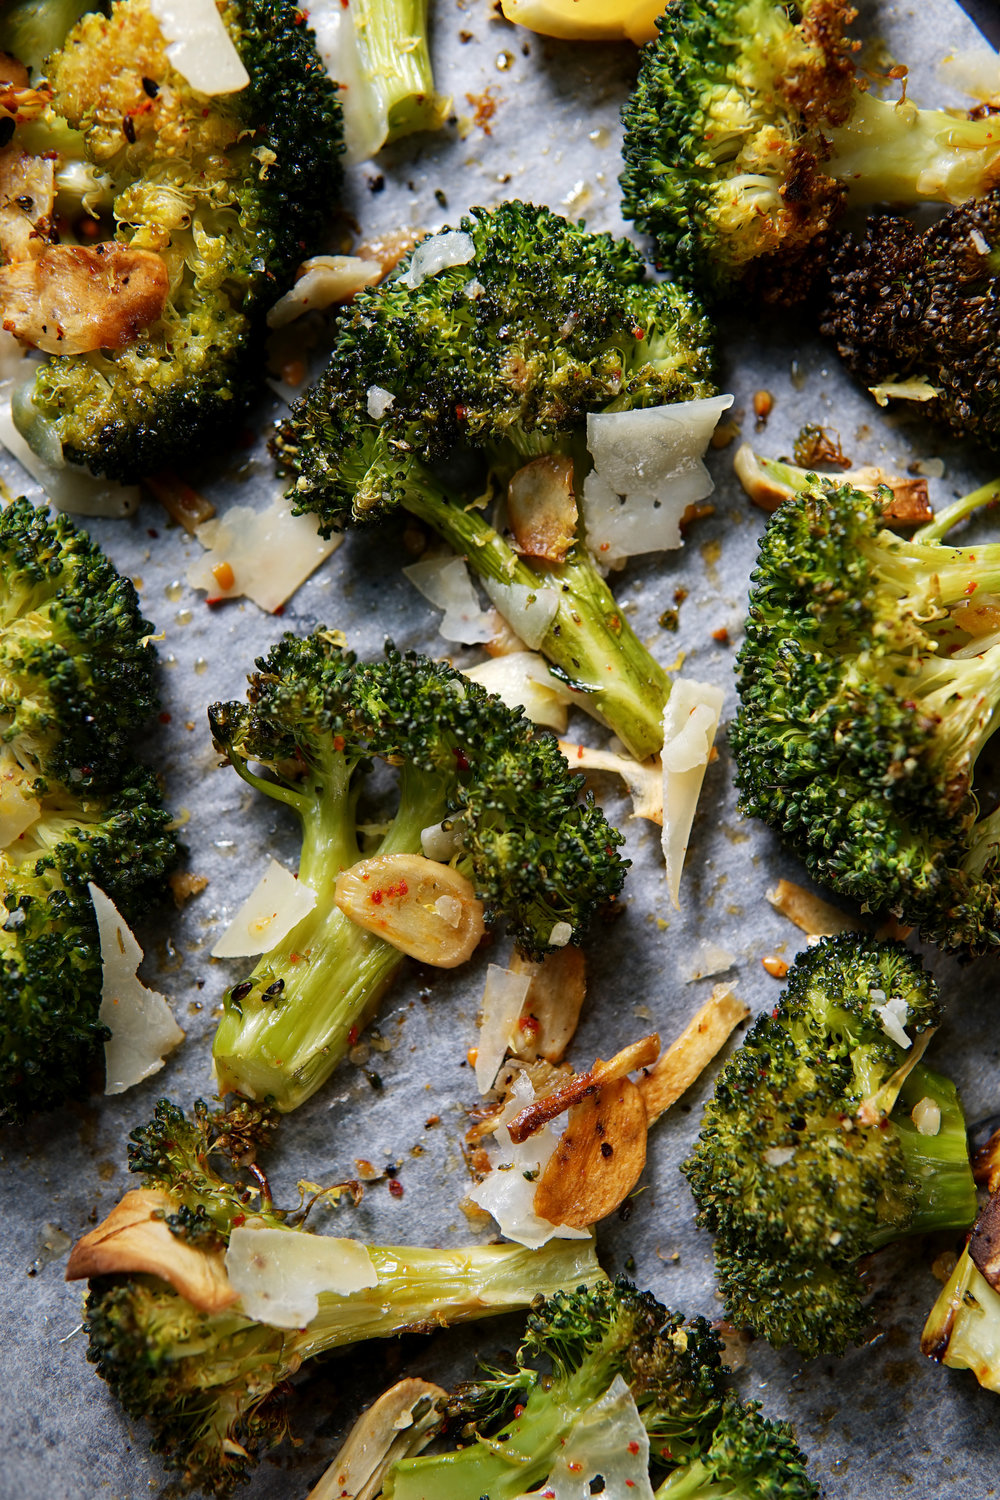 Crack Broccoli Recipe by Broke and Cooking - www.brokeandcooking.com